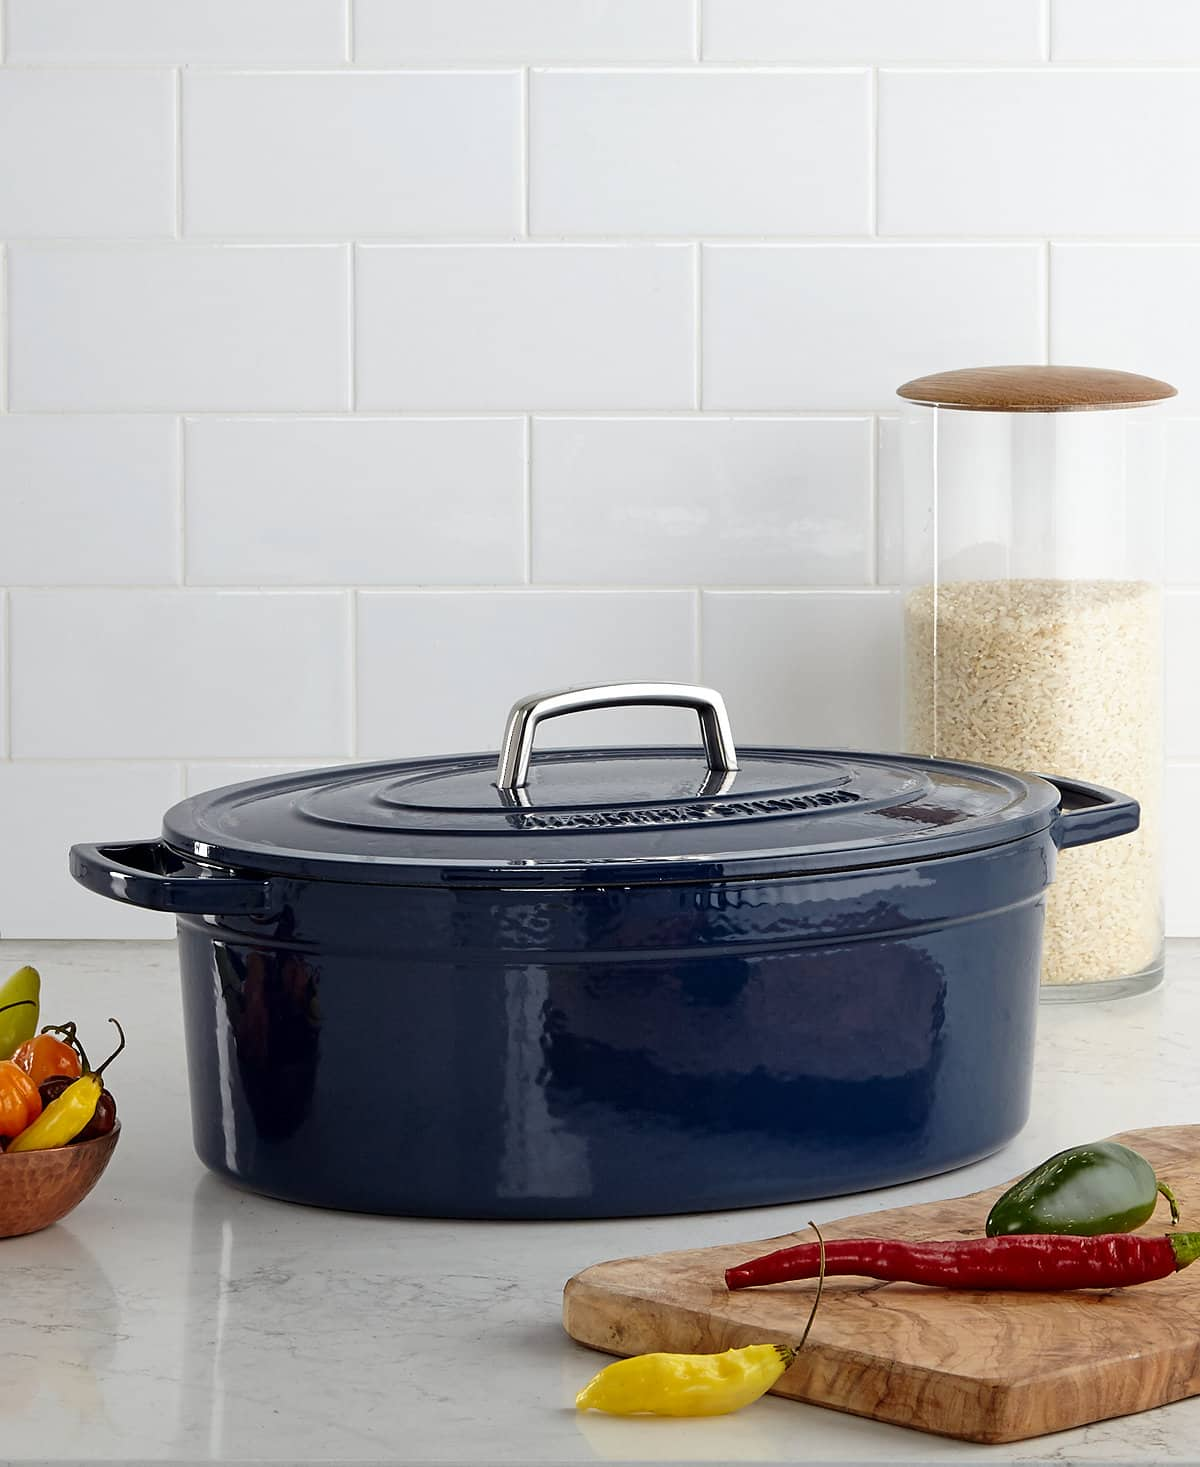 Macy's - Martha Stewart Collection Collector's Enameled Cast Iron 8 Qt. Oval Casserole, Blueberry (dark navy blue) - $71.23